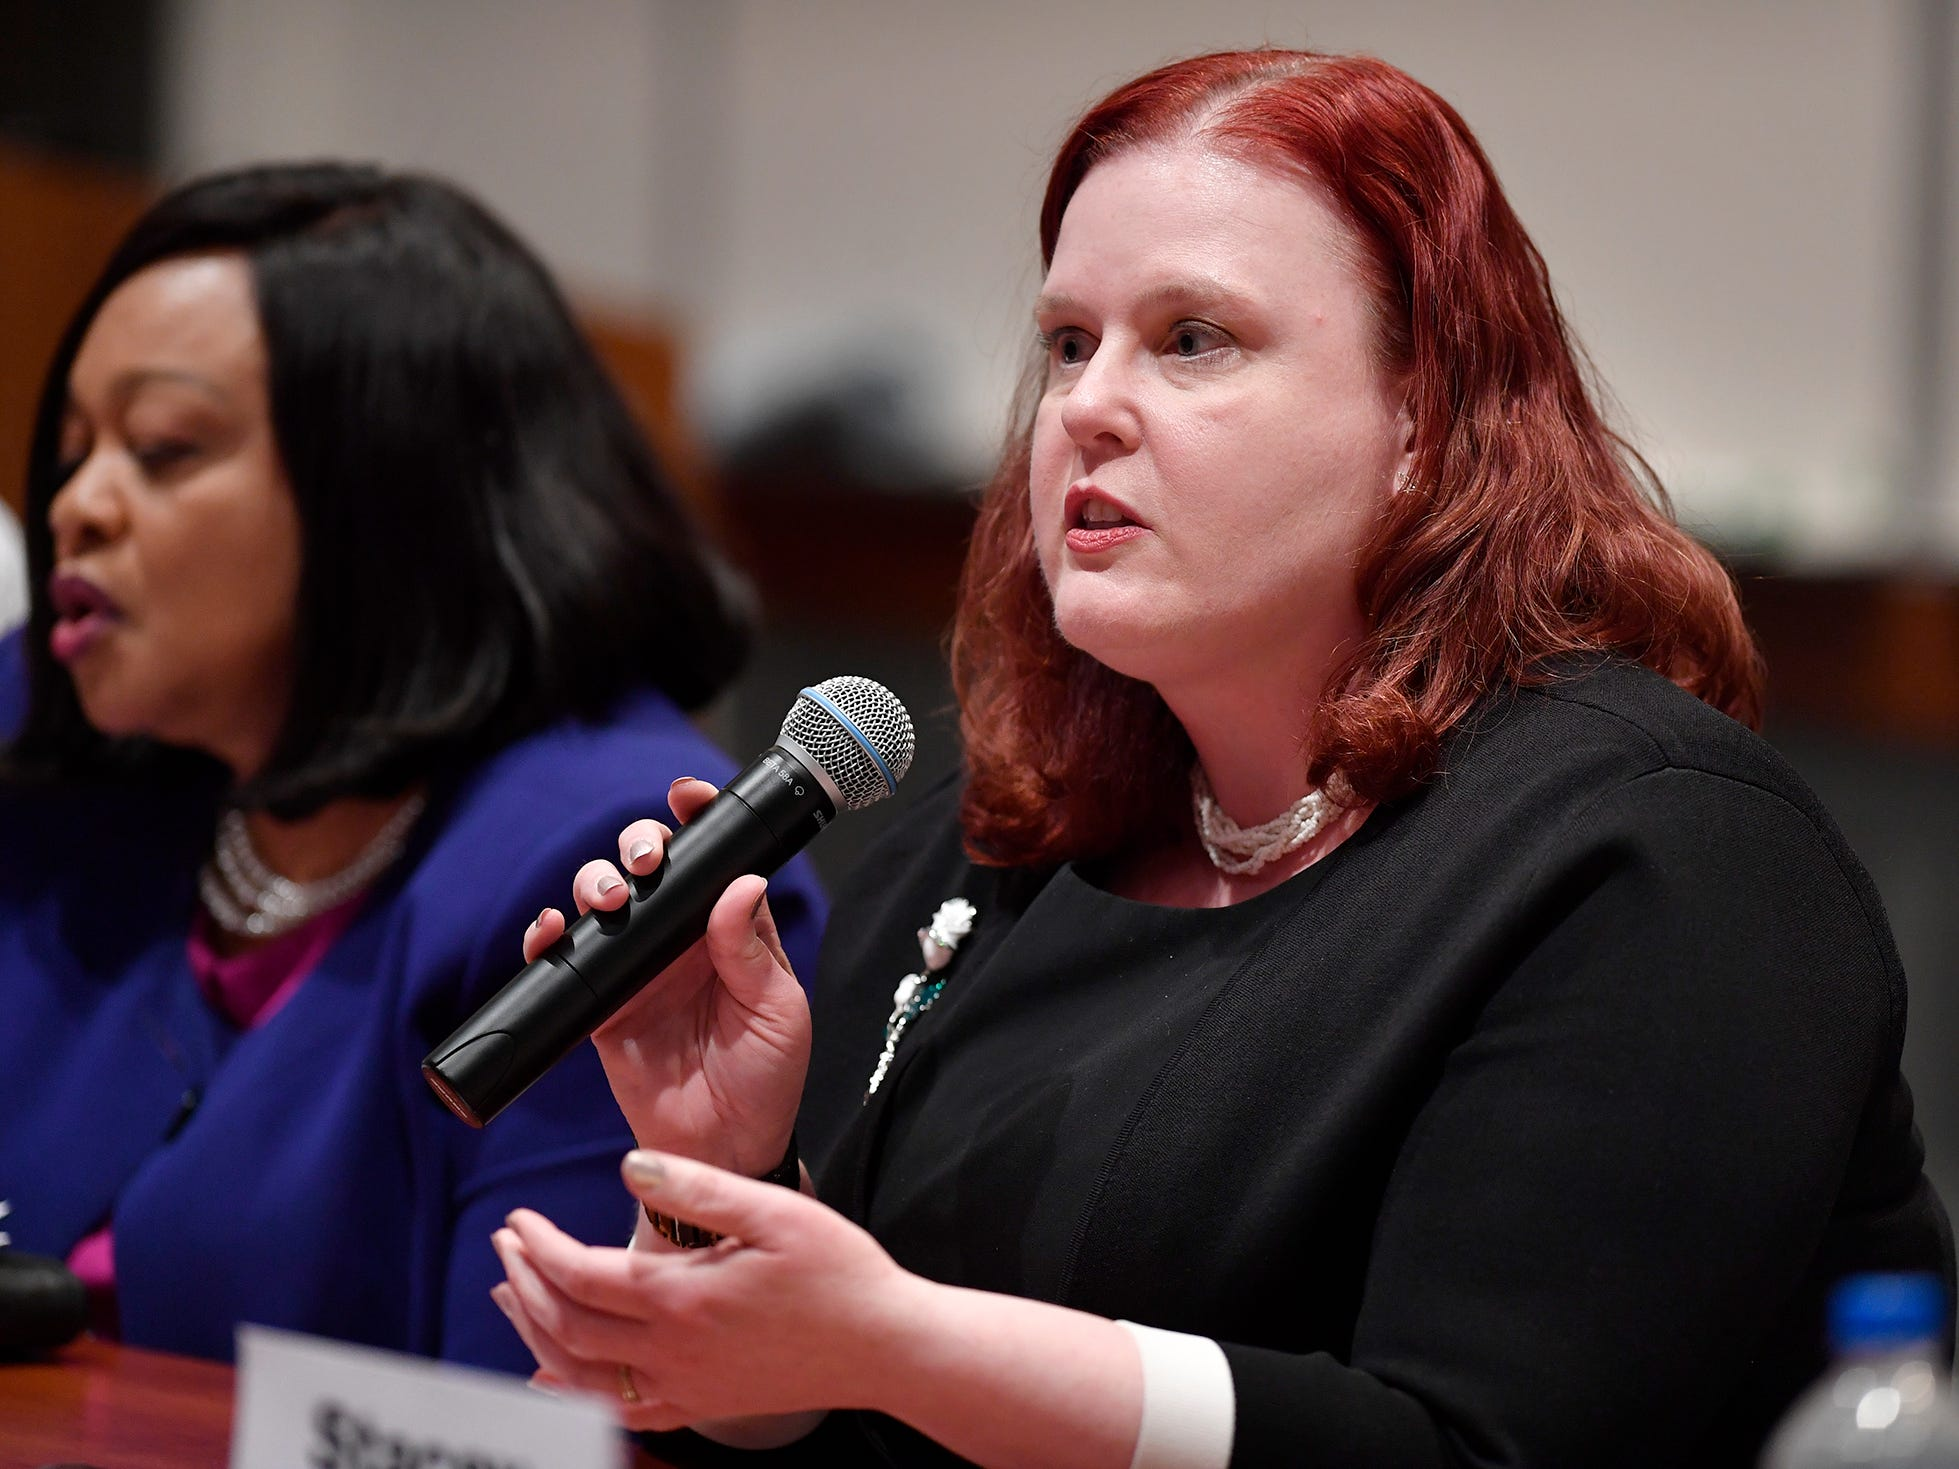 Christina Stetler (D) candidate for Prothonotary, takes part in the York Stands Up bipartisan countywide candidates forum in the Weinstock Lecture Hall inside the Willman Business Center at York College, Monday, May 6, 2019.John A. Pavoncello photo